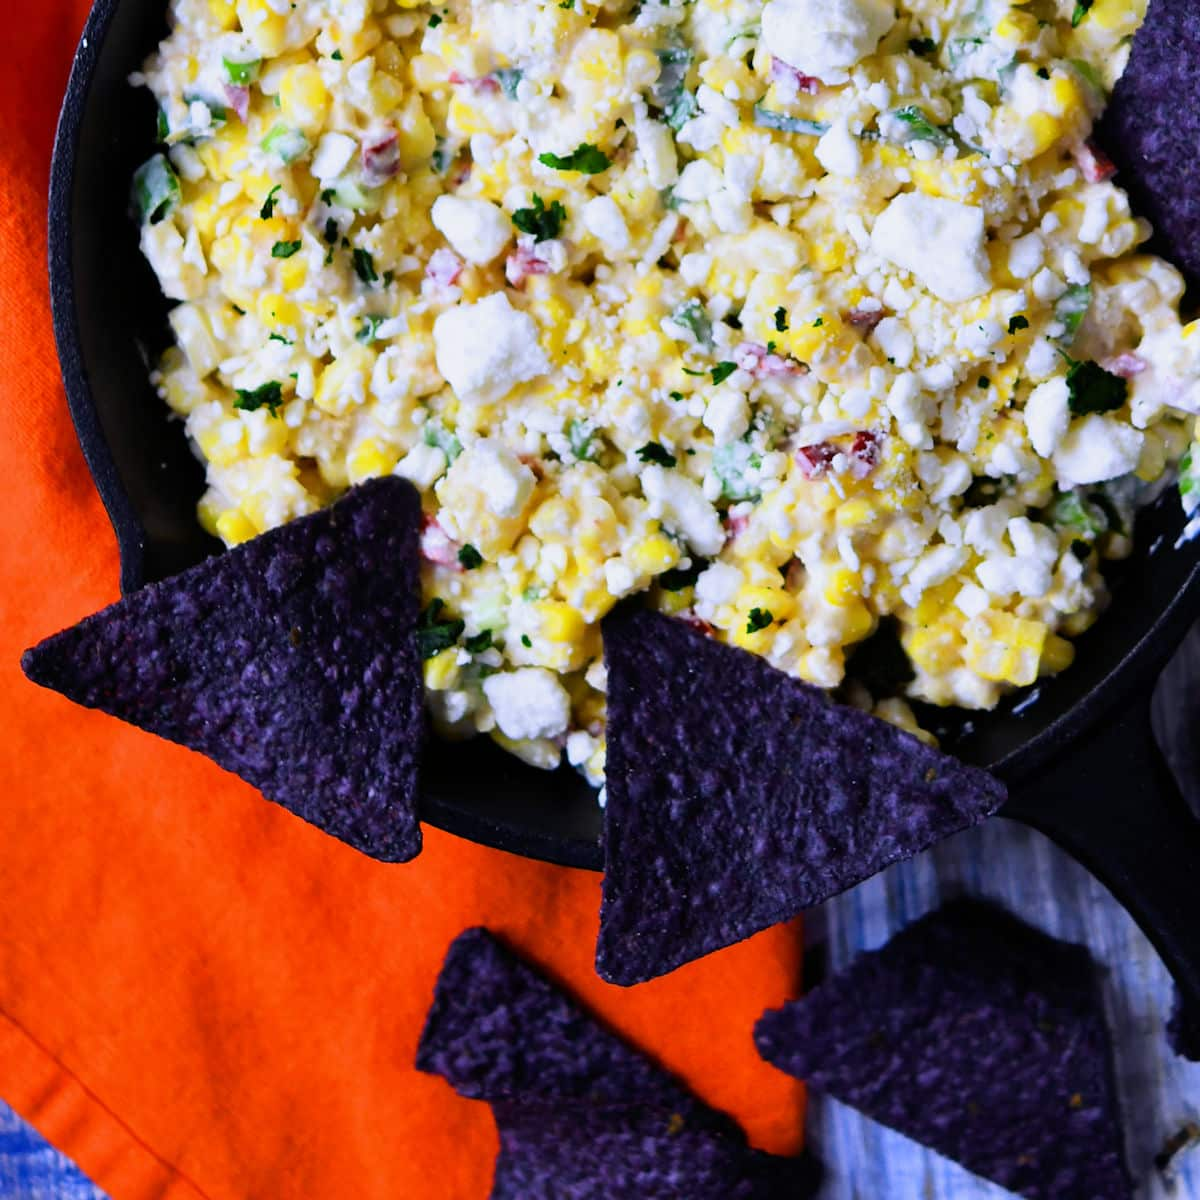 24Bite: Corn Salad with Mayo Quick and Easy recipe by Christian Guzman